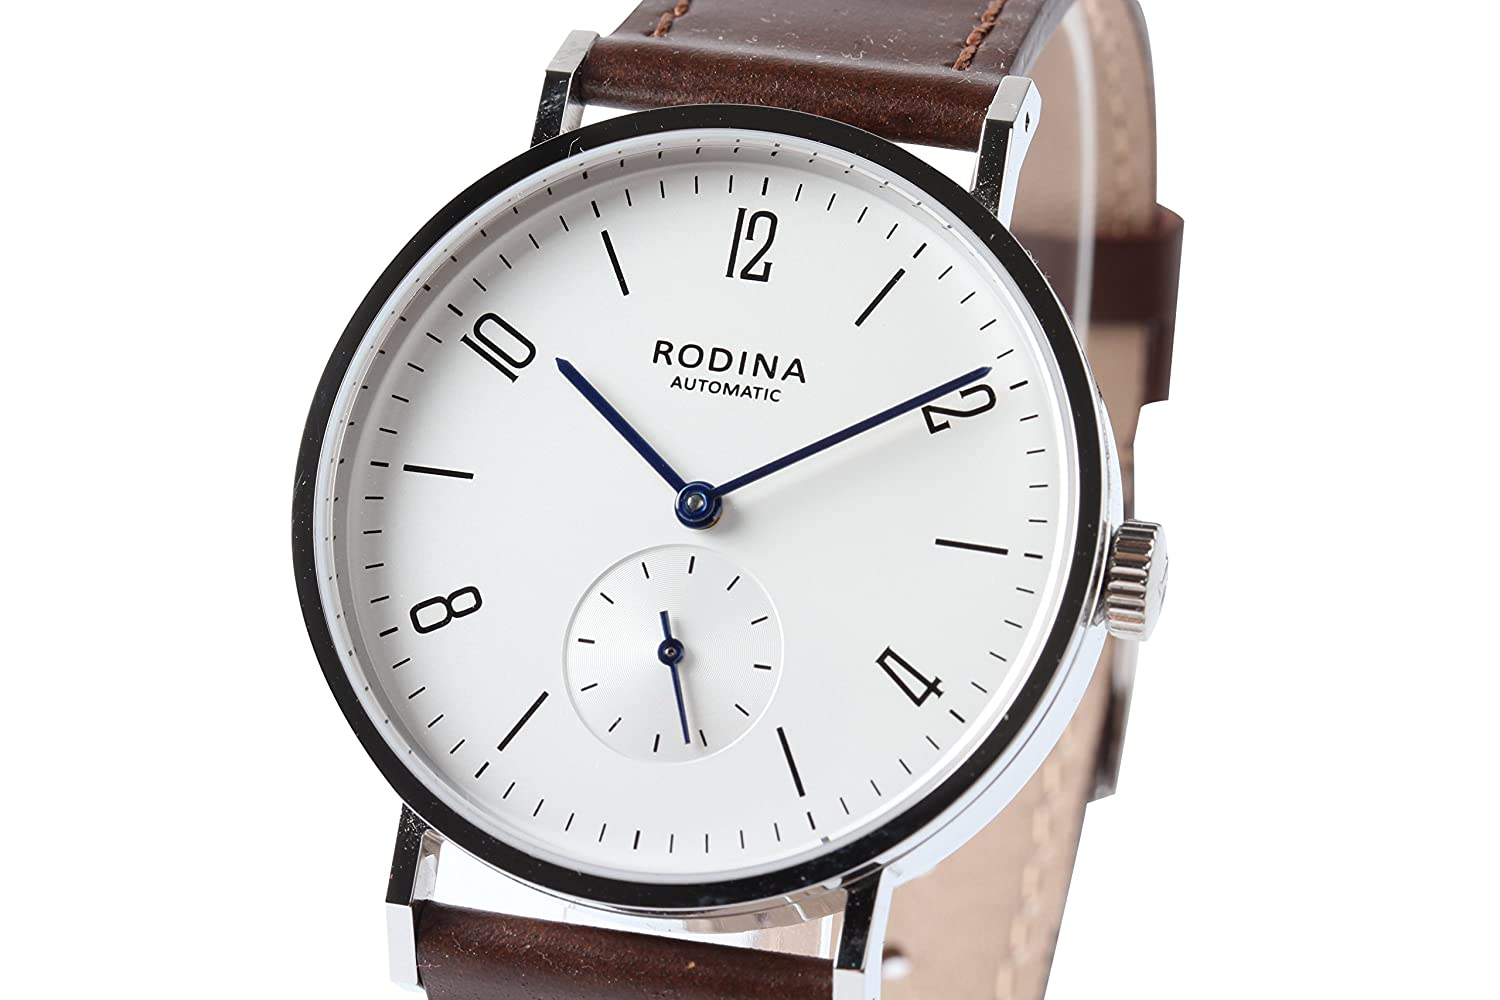 watch roundup rodina unboxing box review watches reviews photo automatic